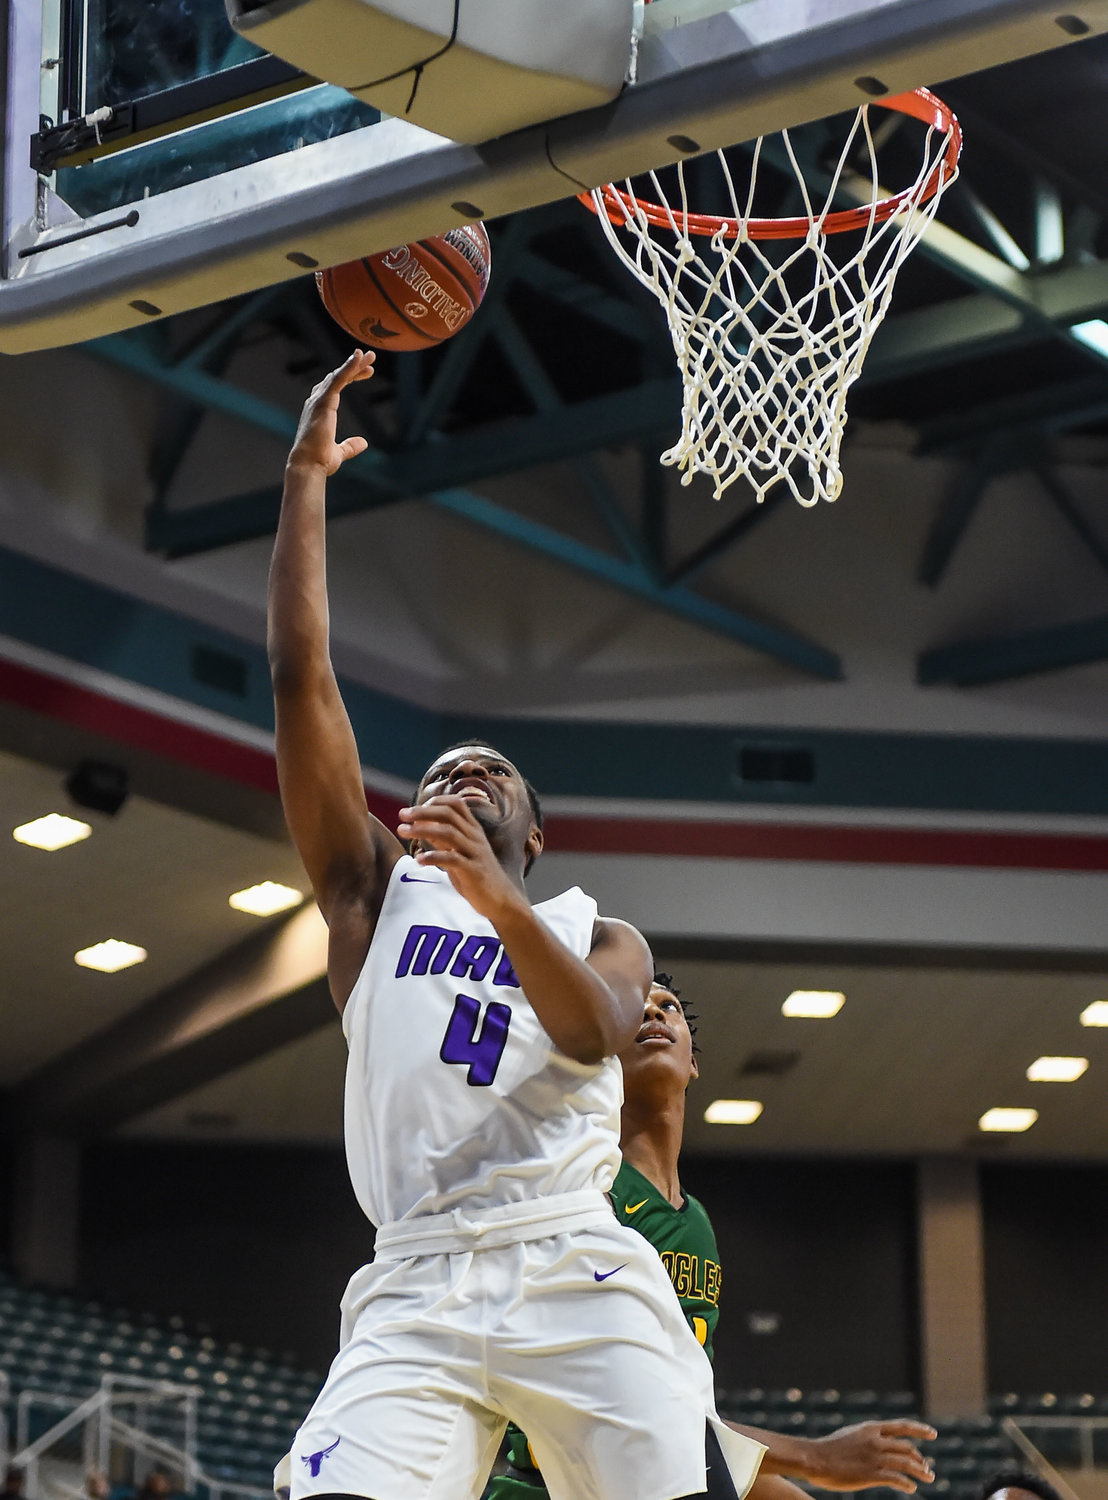 Katy Tx. Dec7, 2019: Morton Ranch's LJ Cryer (4) drives to the basket scoring during the Katy Classic at the Merrell Center.  (Photo by Mark Goodman / Katy Times)